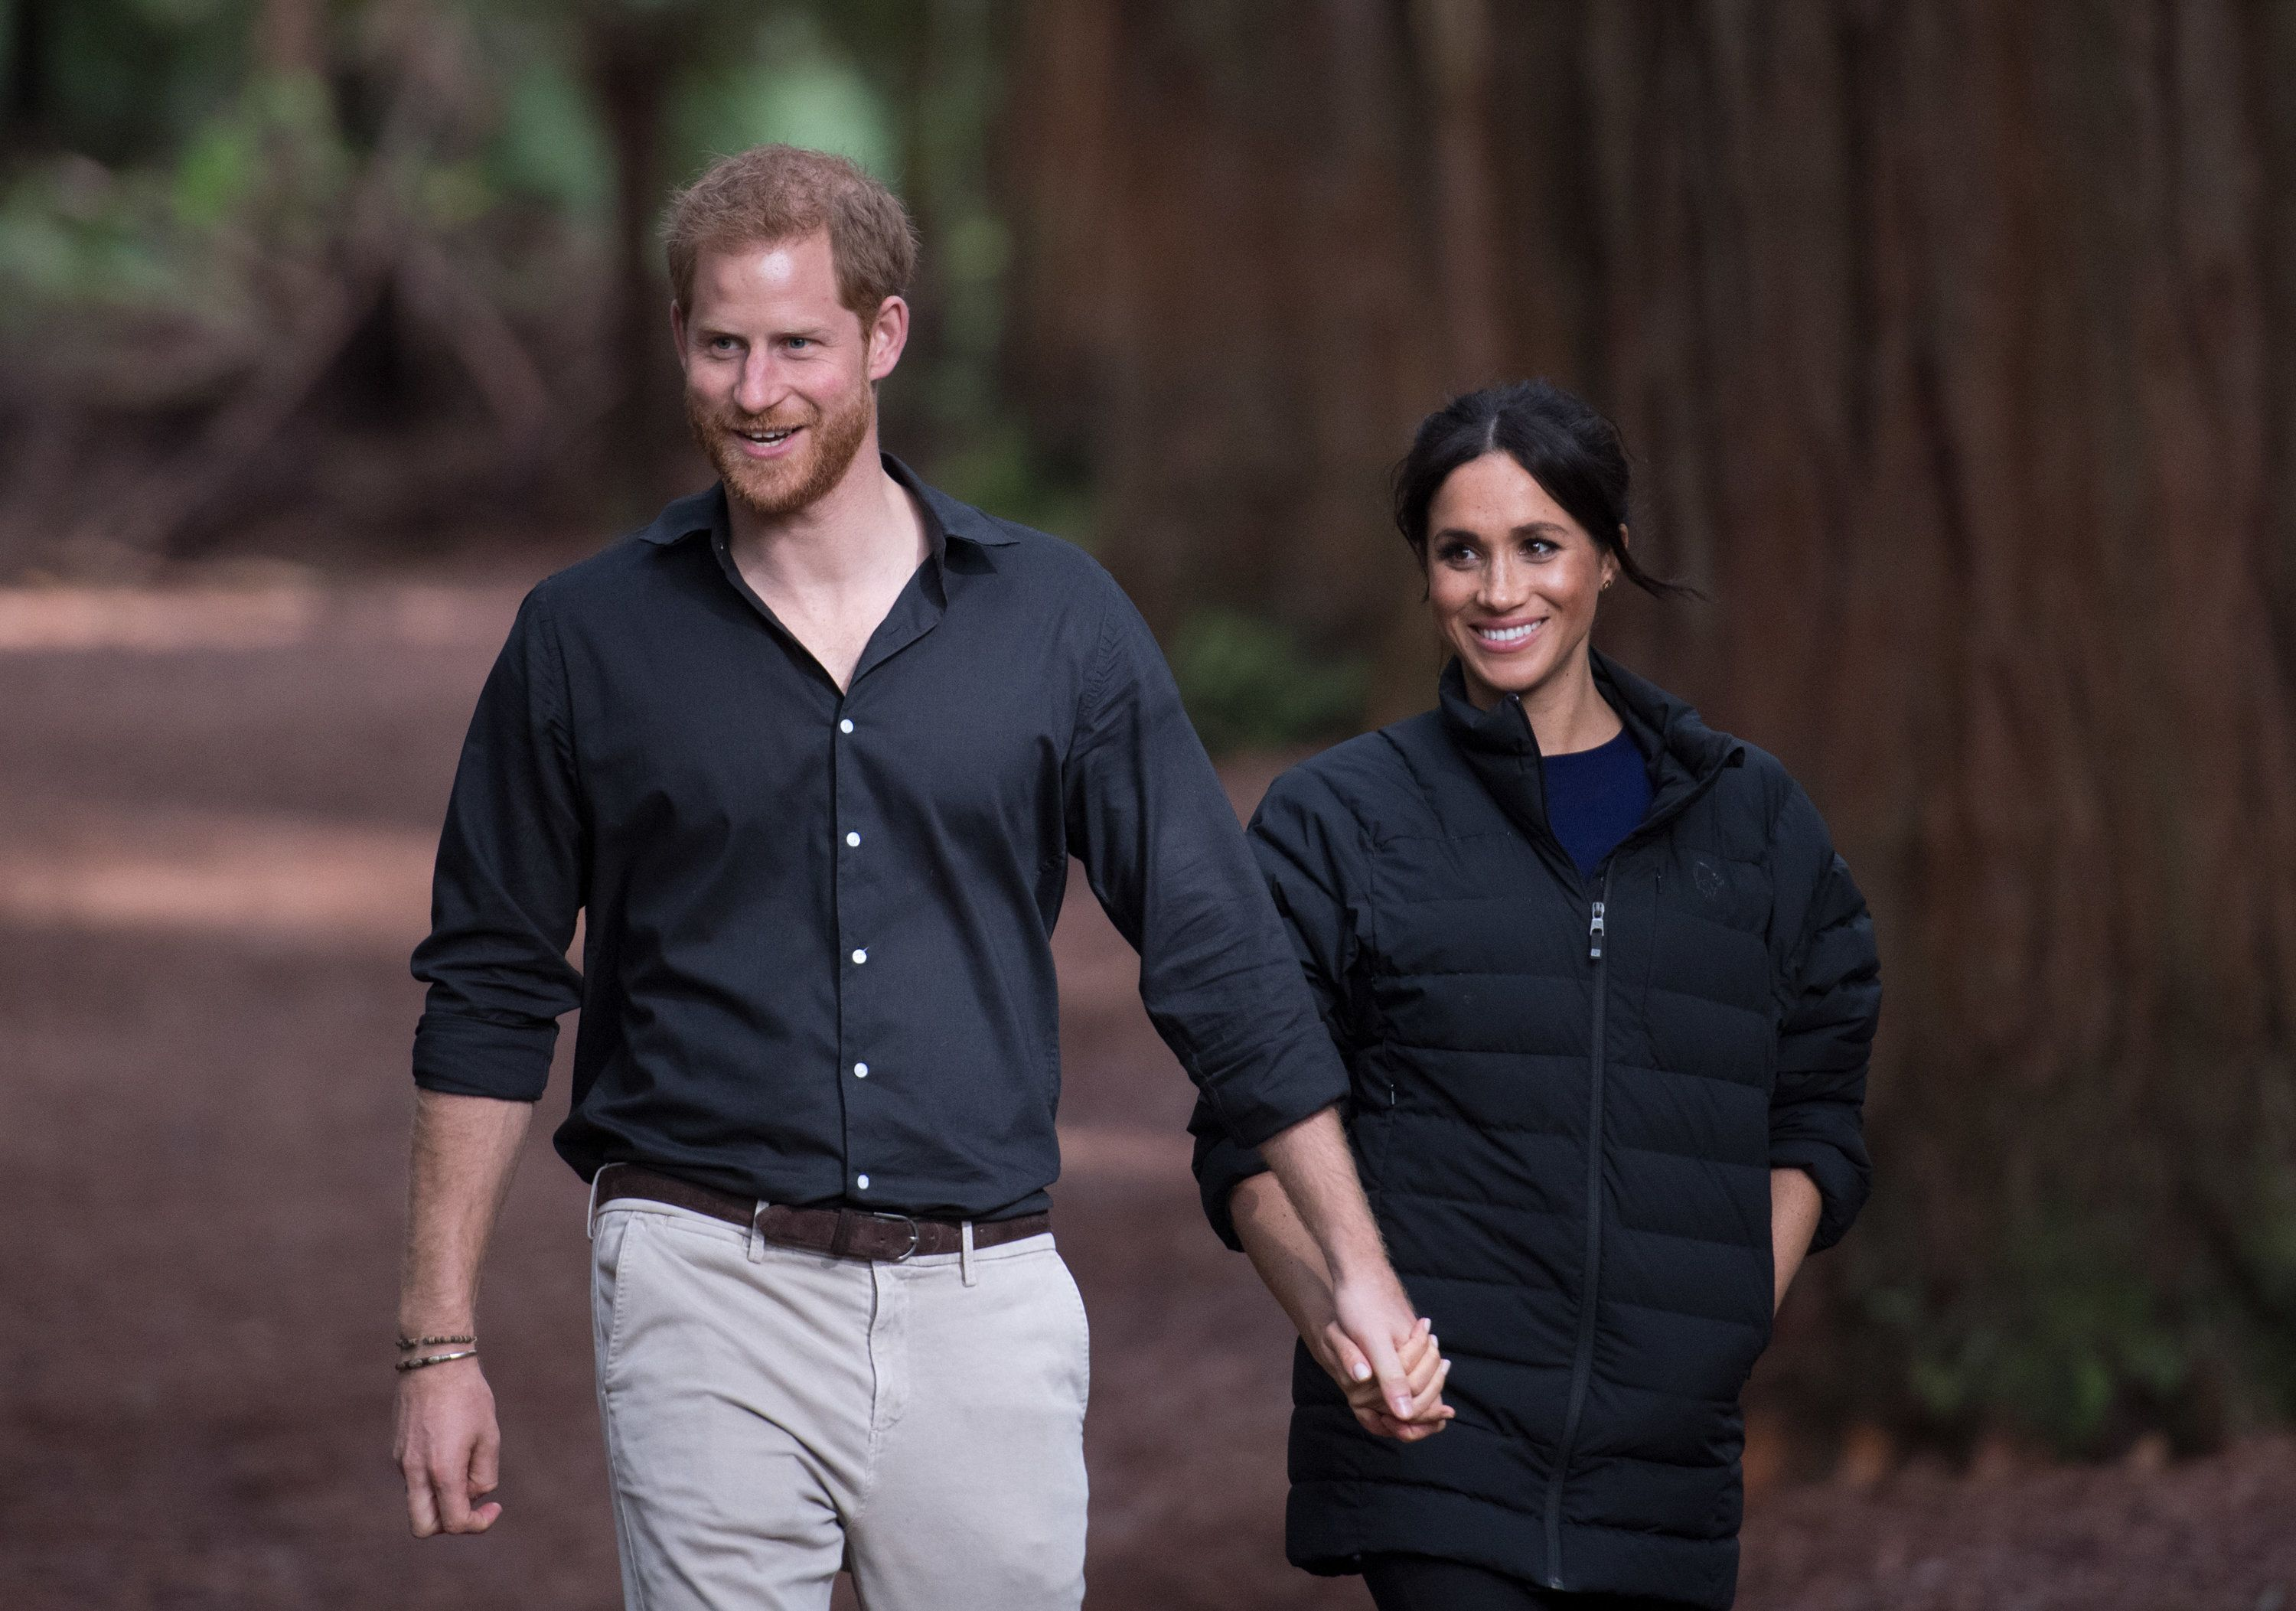 ROTORUA, NEW ZEALAND - OCTOBER 31:  (UK OUT FOR 28 DAYS) Prince Harry, Duke of Sussex and Meghan, Duchess of Sussex visit Redwoods Tree Walk on October 31, 2018 in Rotorua, New Zealand. The Duke and Duchess of Sussex are on their official 16-day Autumn tour visiting cities in Australia, Fiji, Tonga and New Zealand.  (Photo by Pool/Samir Hussein/WireImage)